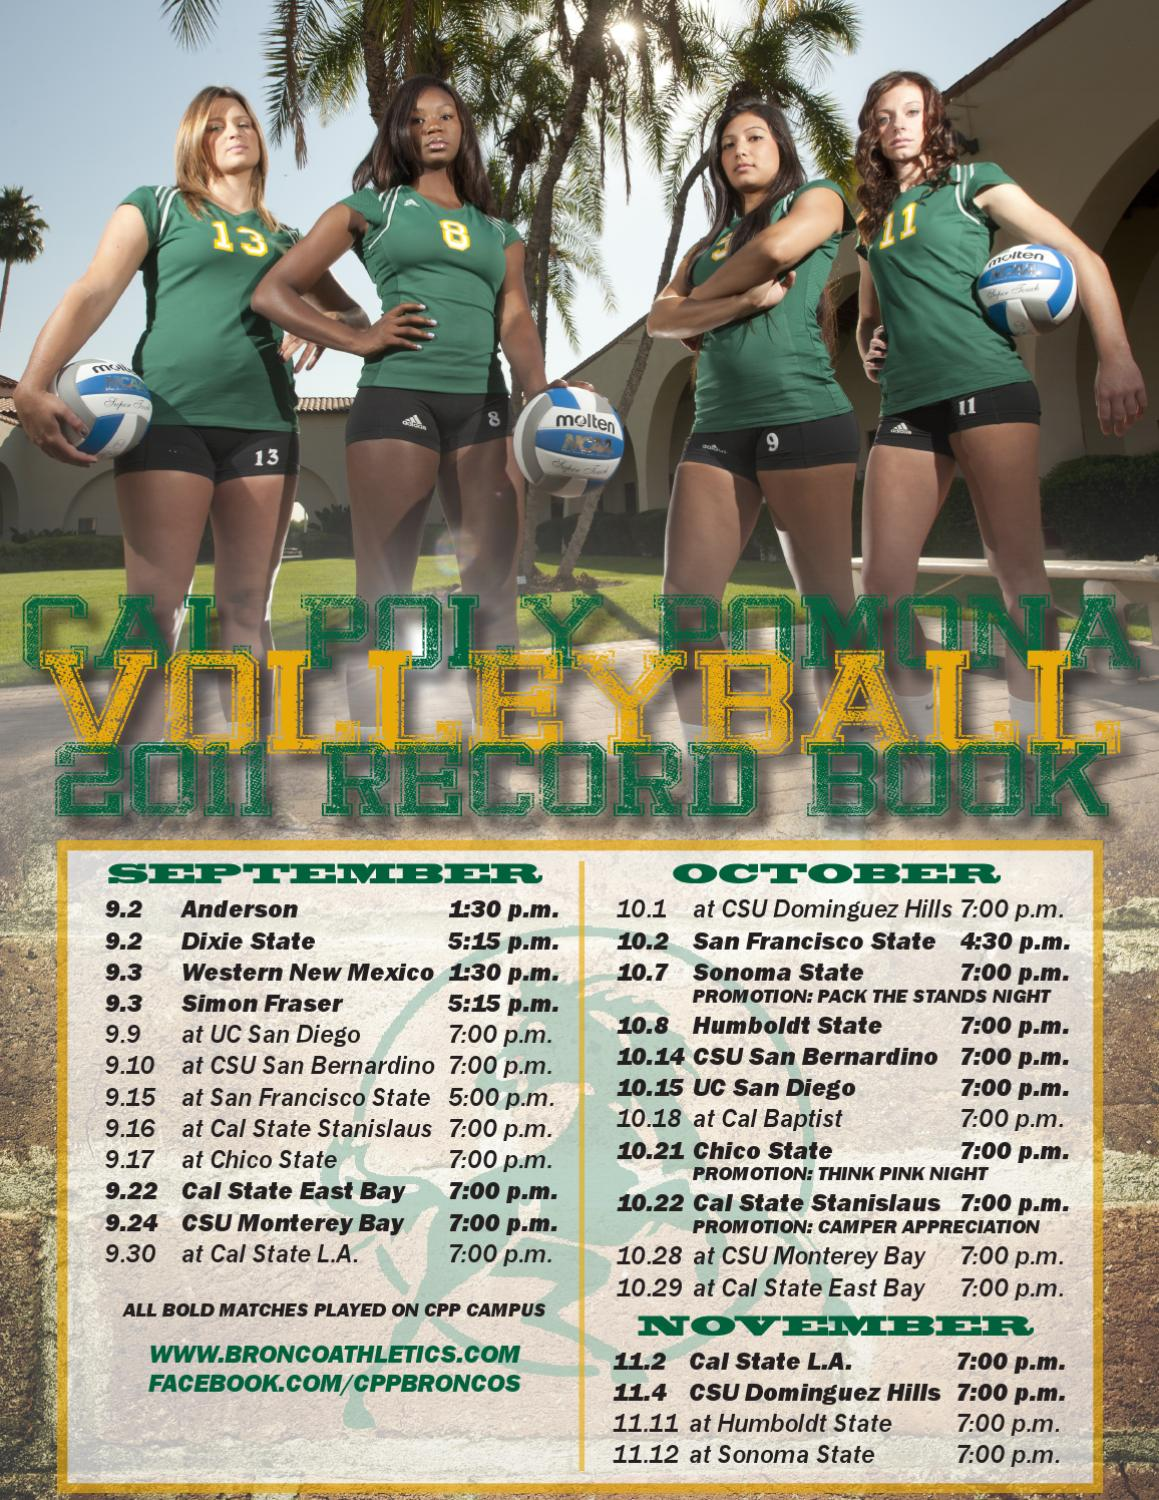 2011 Cal Poly Pomona Volleyball Record Book By Billy Bronco Issuu